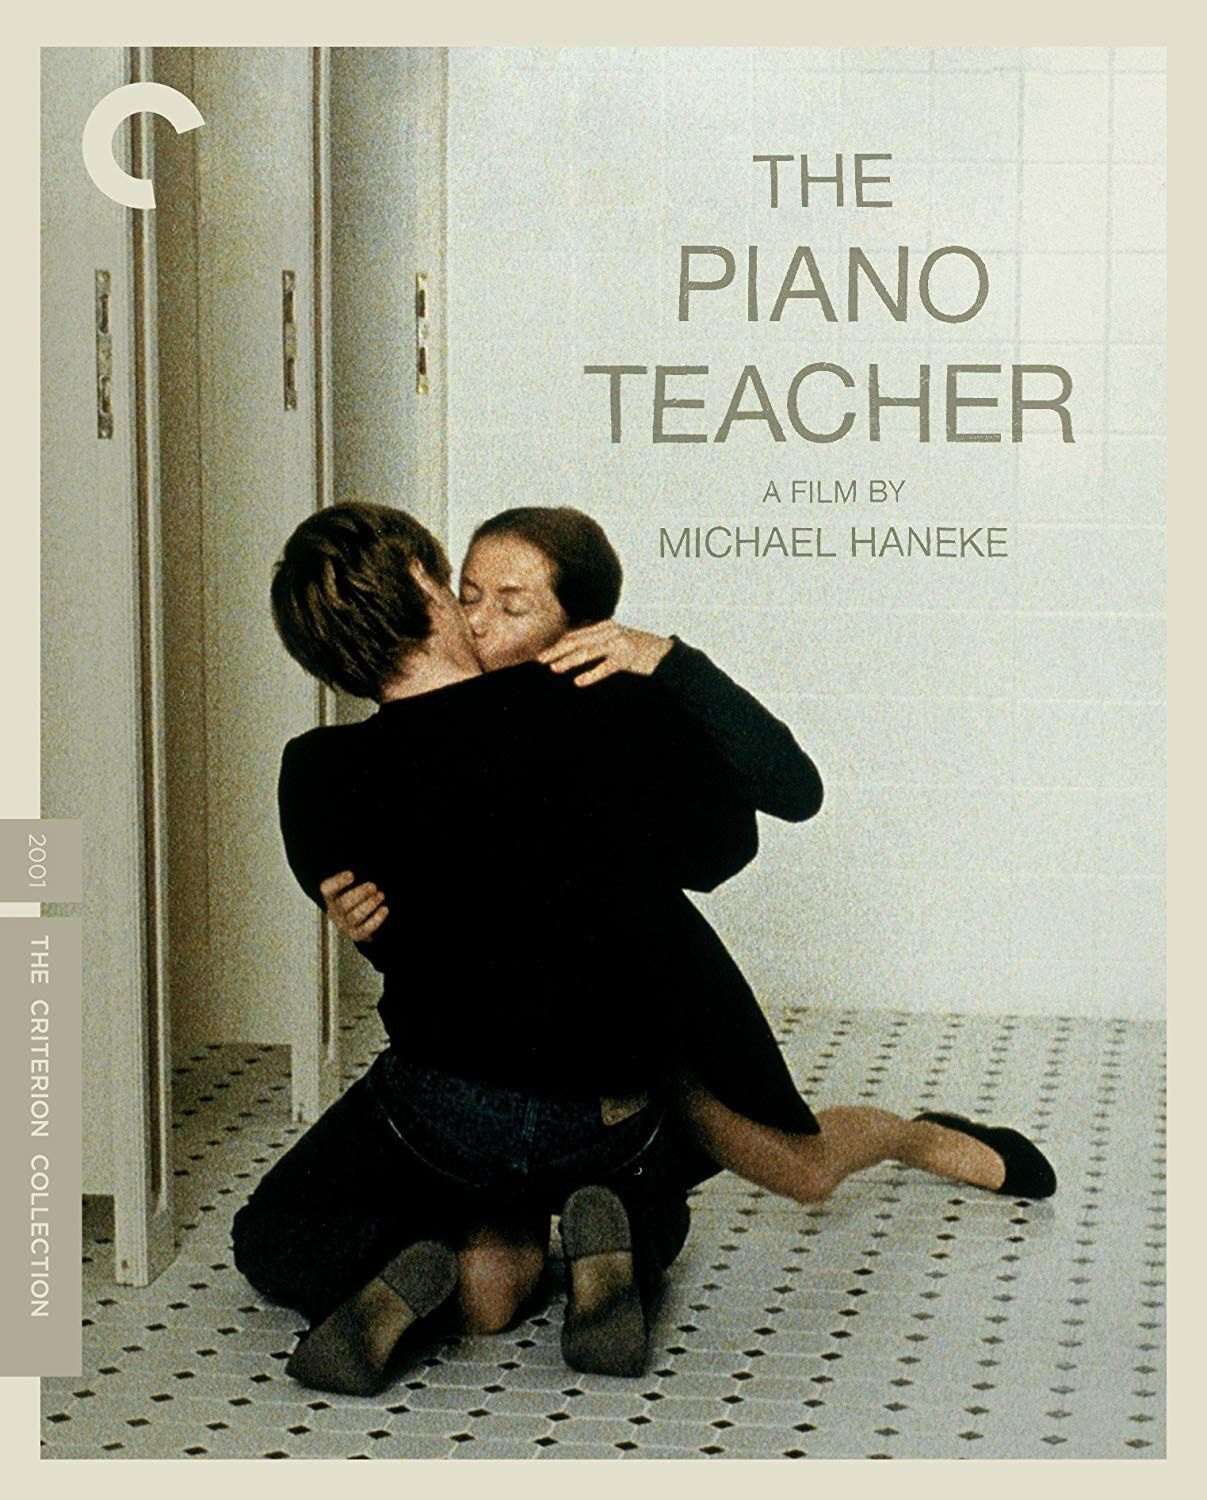 Giáo Viên Piano - The Piano Teacher